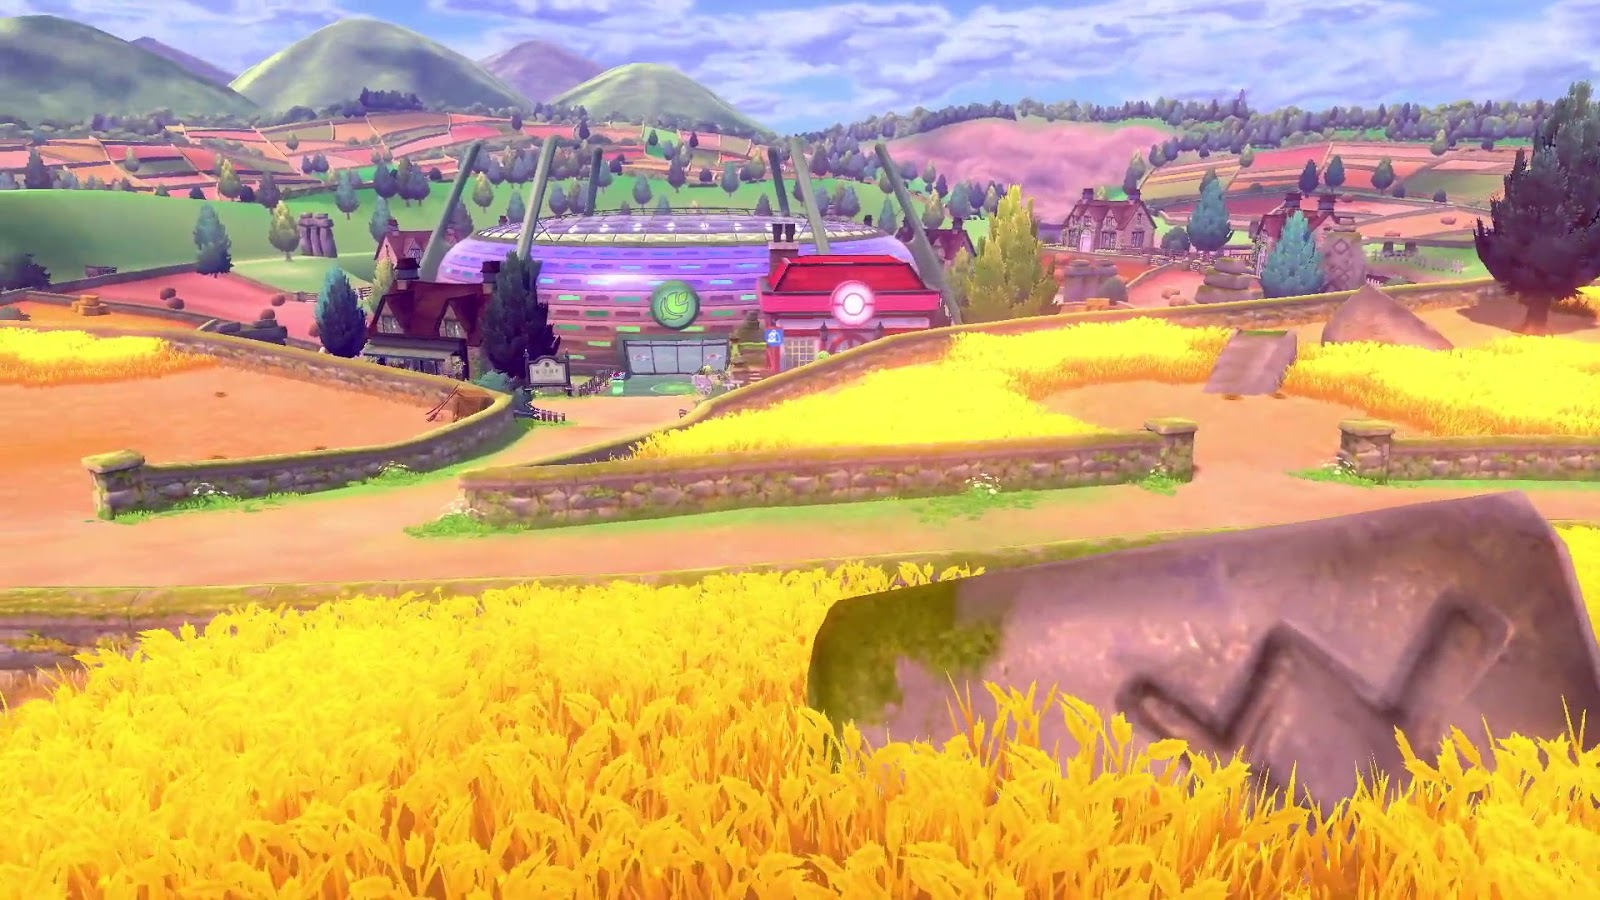 I Choose To Stand Pokemon Sword Shield 10 Speculations Based On